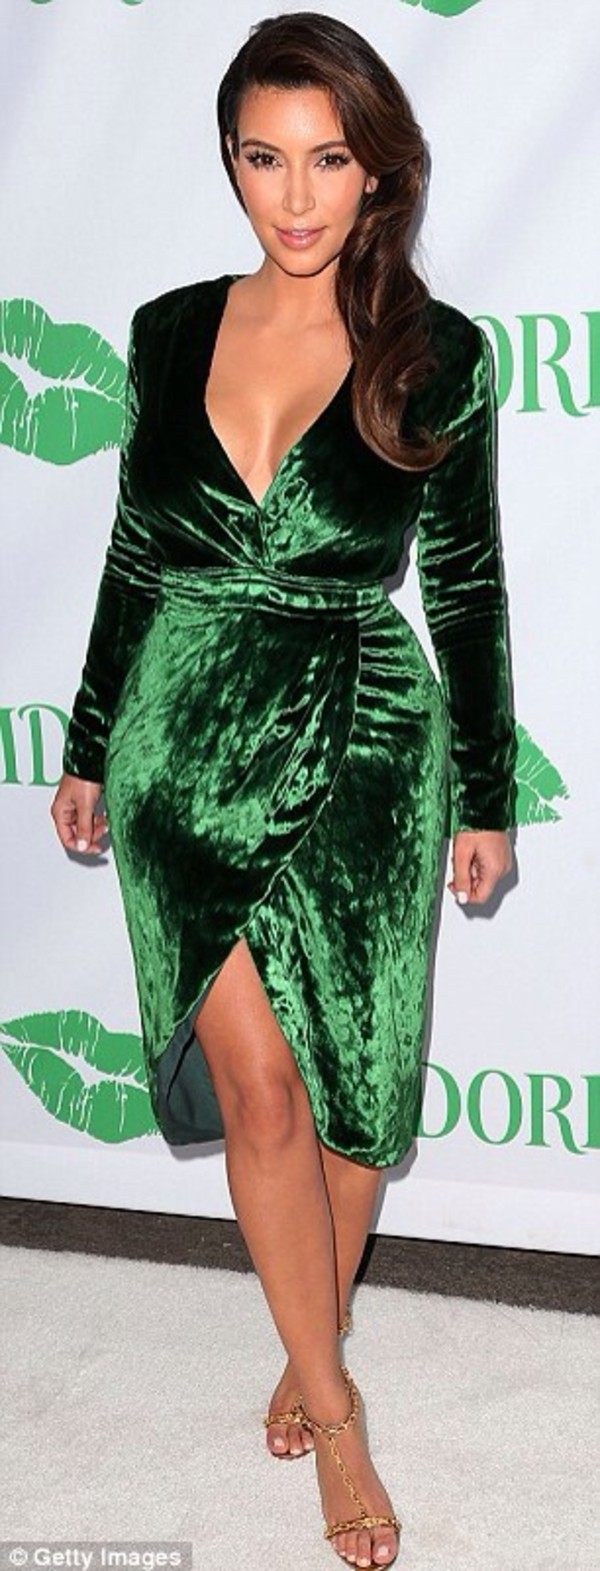 dress kim kardashian green velvet gorgeous keeping up with the kardashians